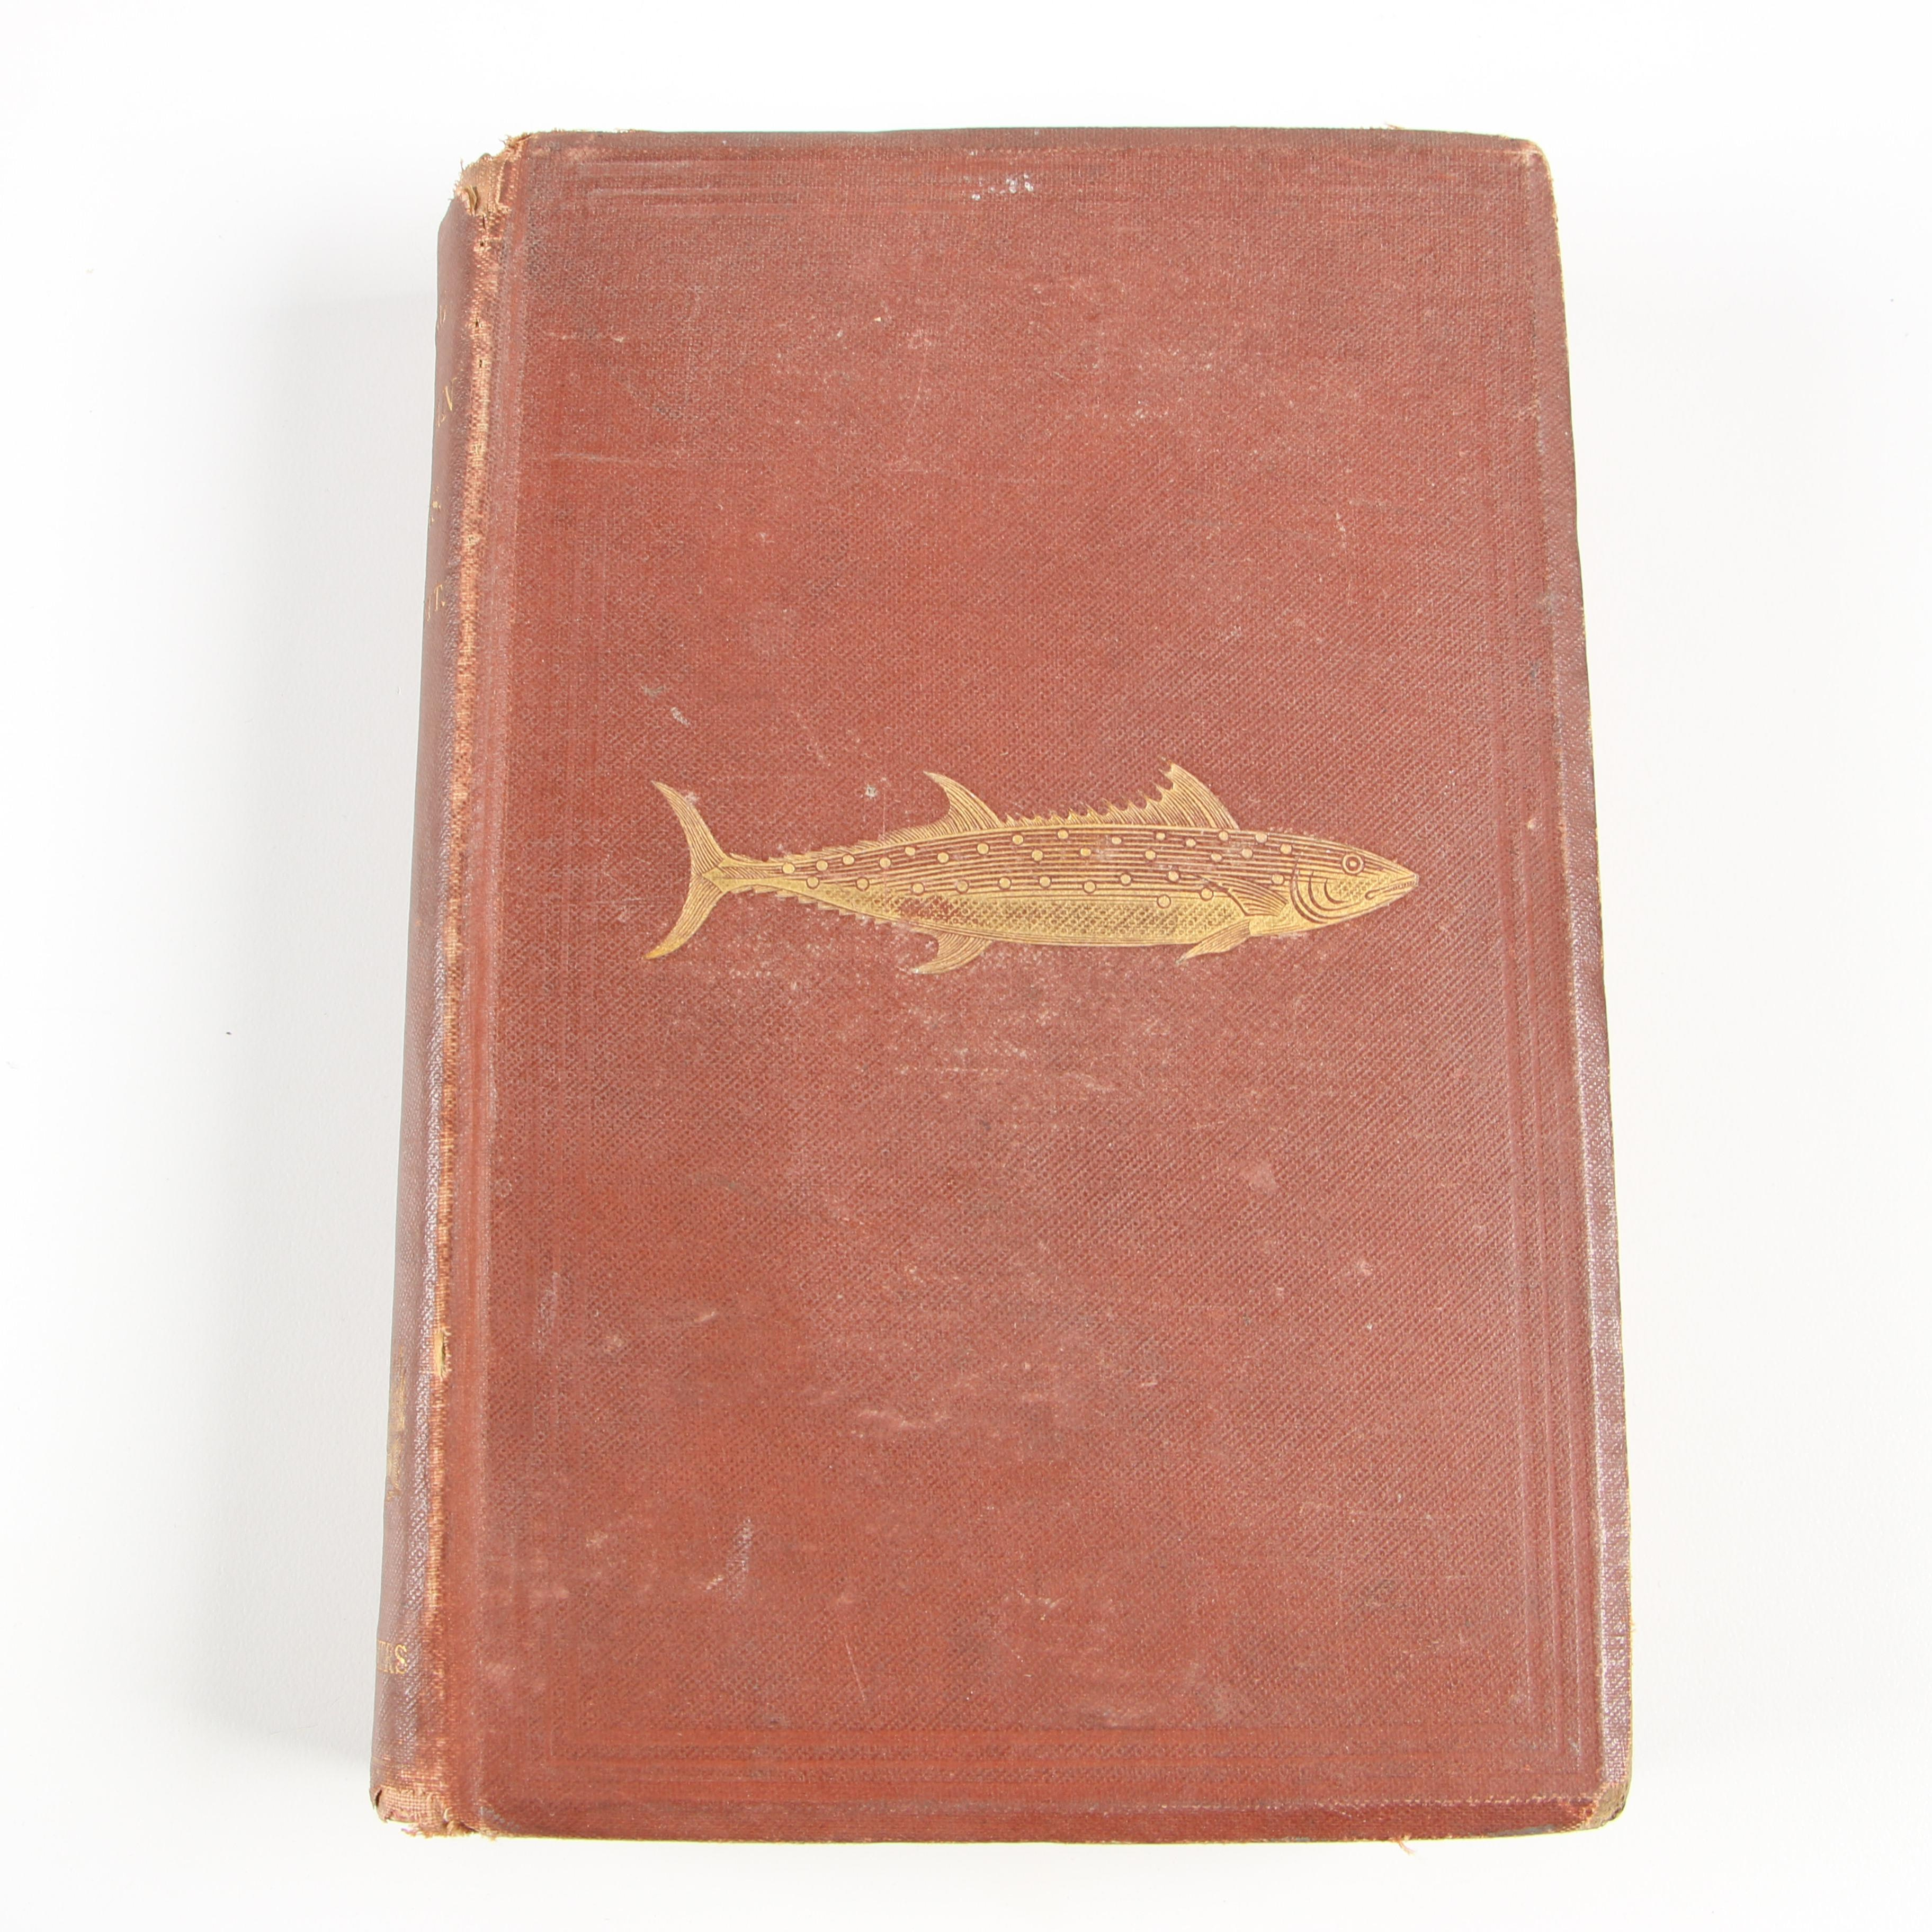 """Fishing Books featuring """"The Complete Angler"""" by Izaak Walton and Charles Cotton"""